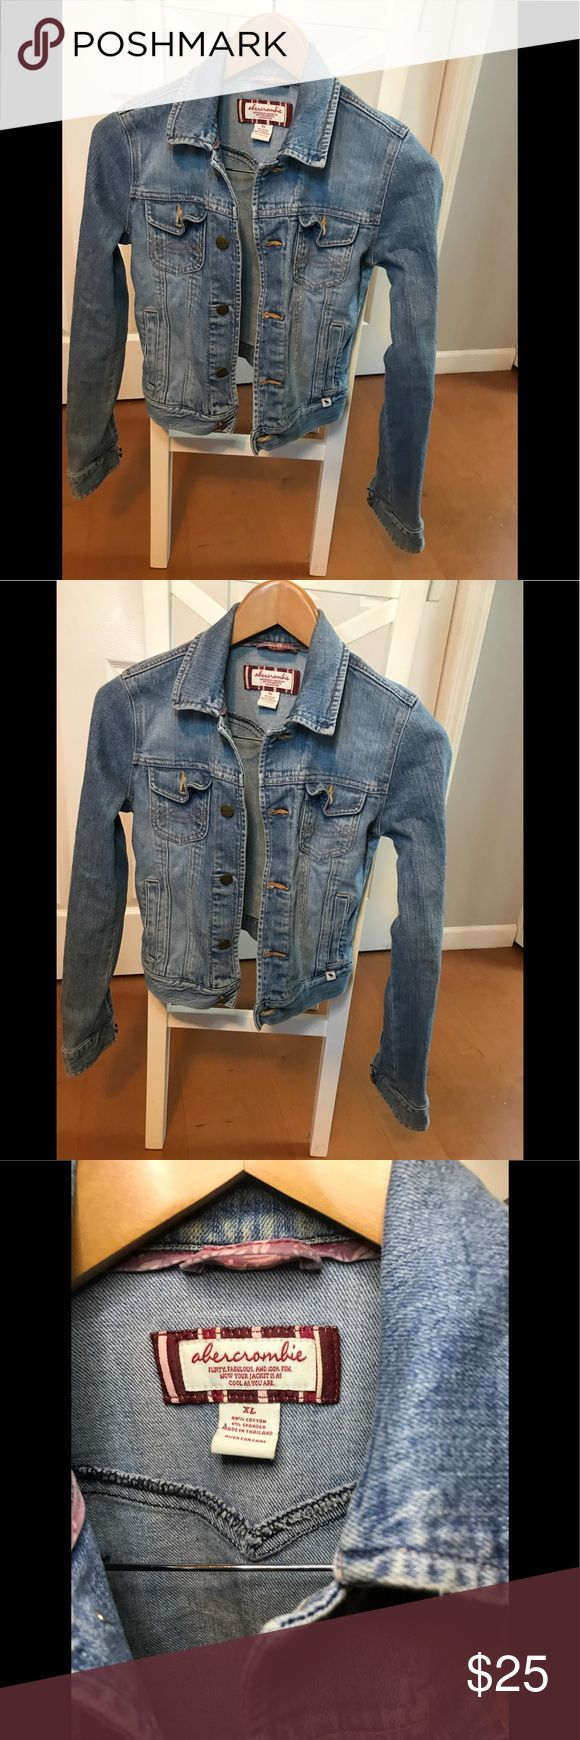 Abercrombie Girl's Jean Jacket Size XL Jean jacket girls size XL  Perfect condition  I wear a size small in women's and this fits me  Smoke free home Abercrombie & Fitch Jackets & Coats Jean Jackets